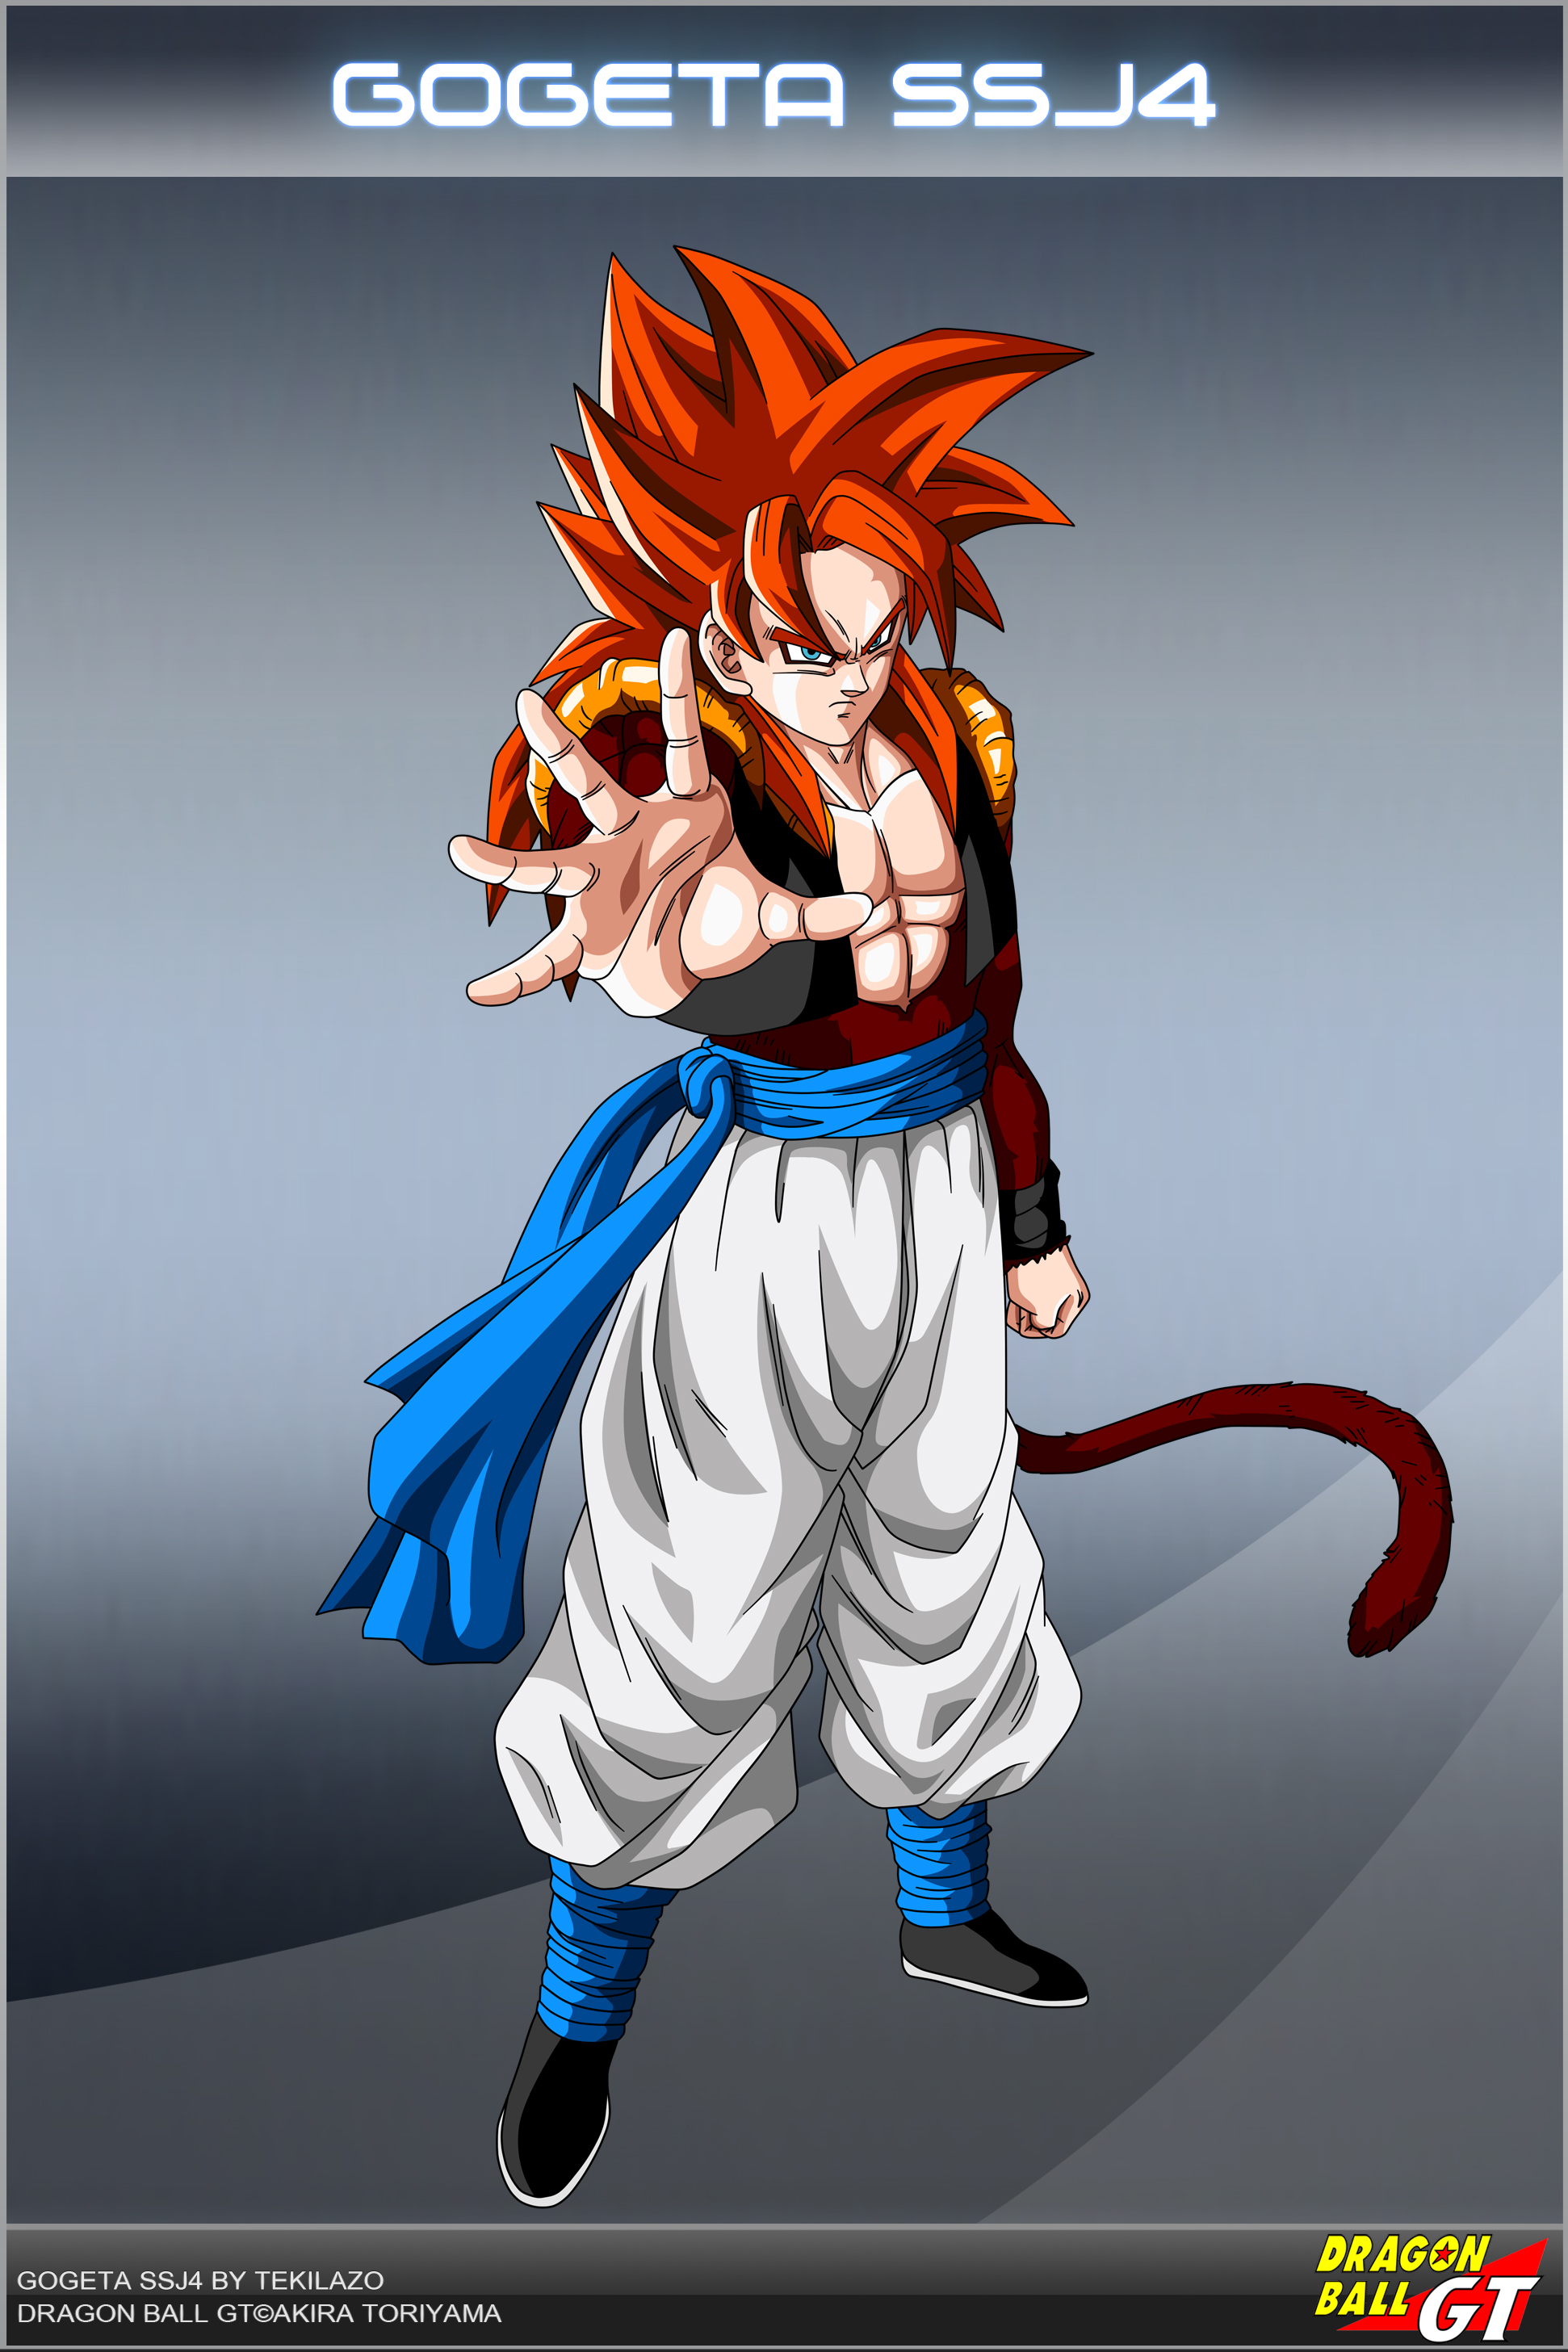 Dragon Ball GT Backgrounds, Compatible - PC, Mobile, Gadgets  1942x2913 px